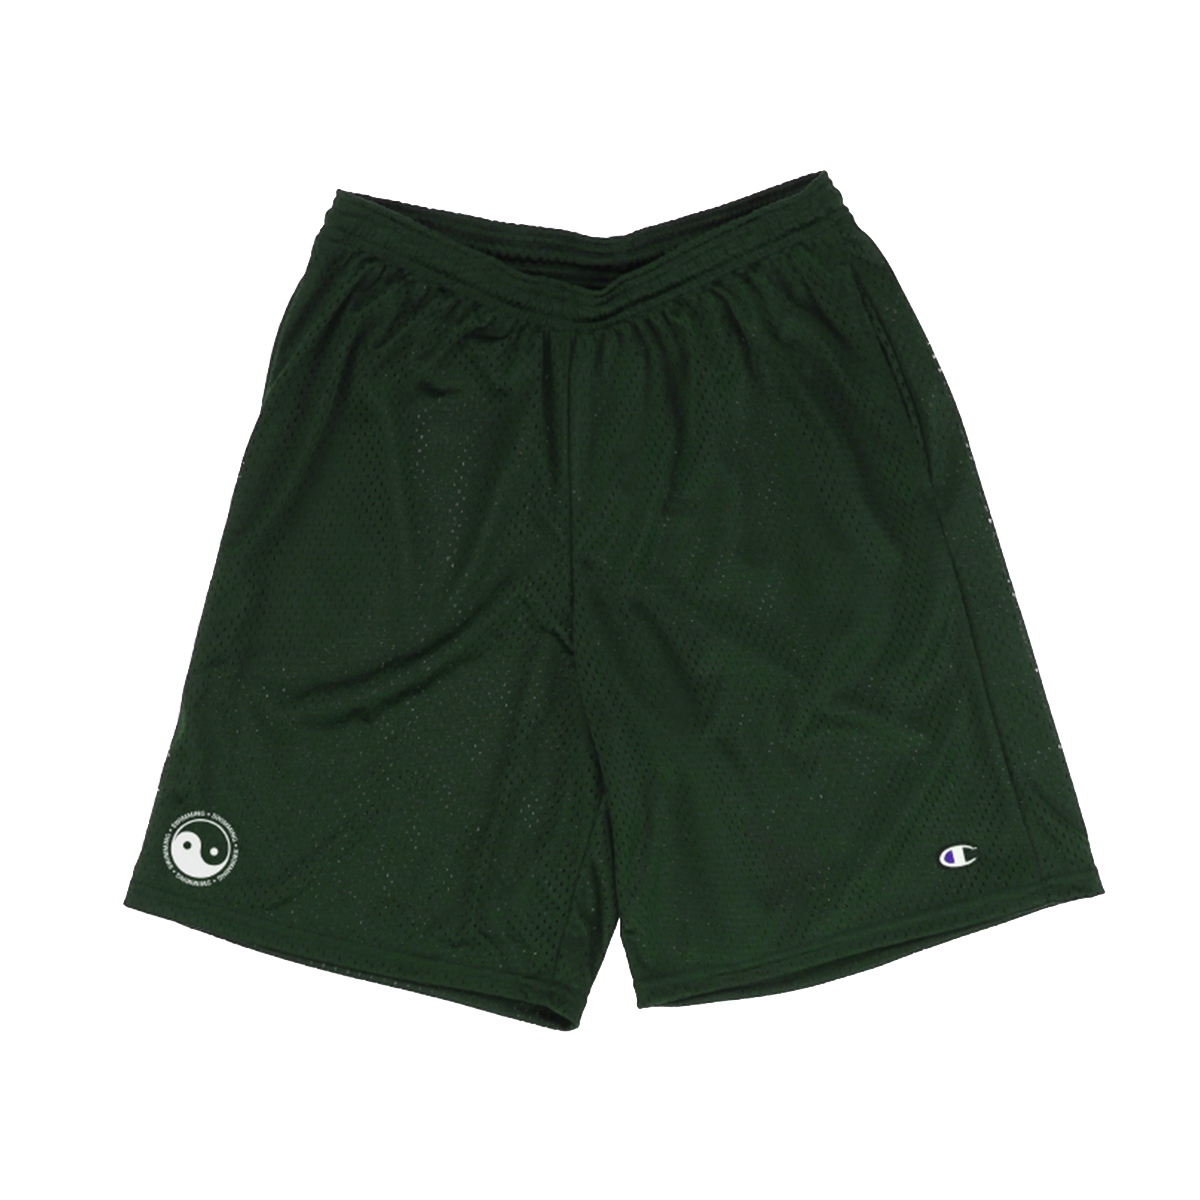 YIN YANG MESH SHORTS - GREEN - Mac Miller